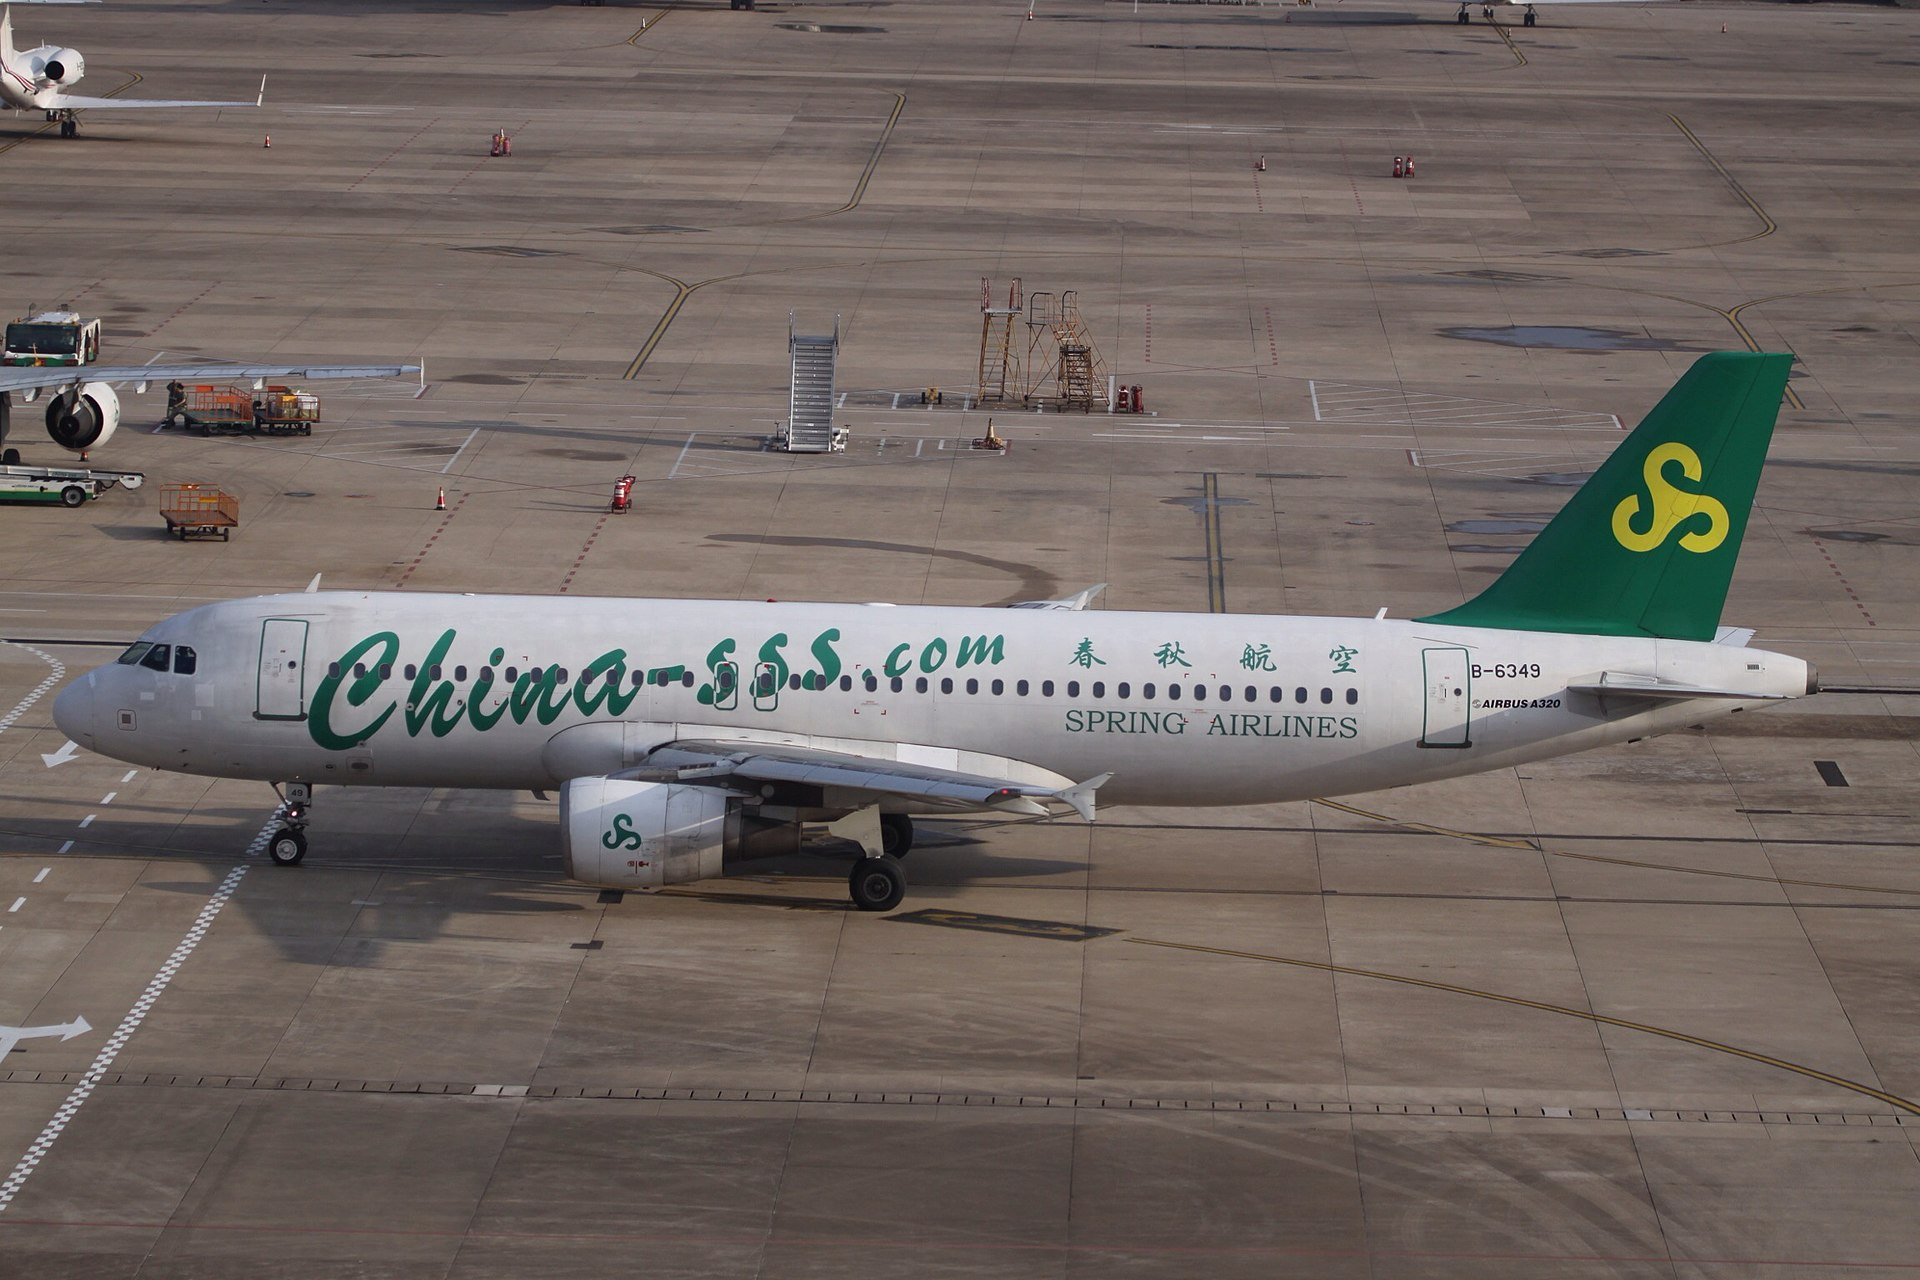 Largest Airline by market cap: Spring Airlines